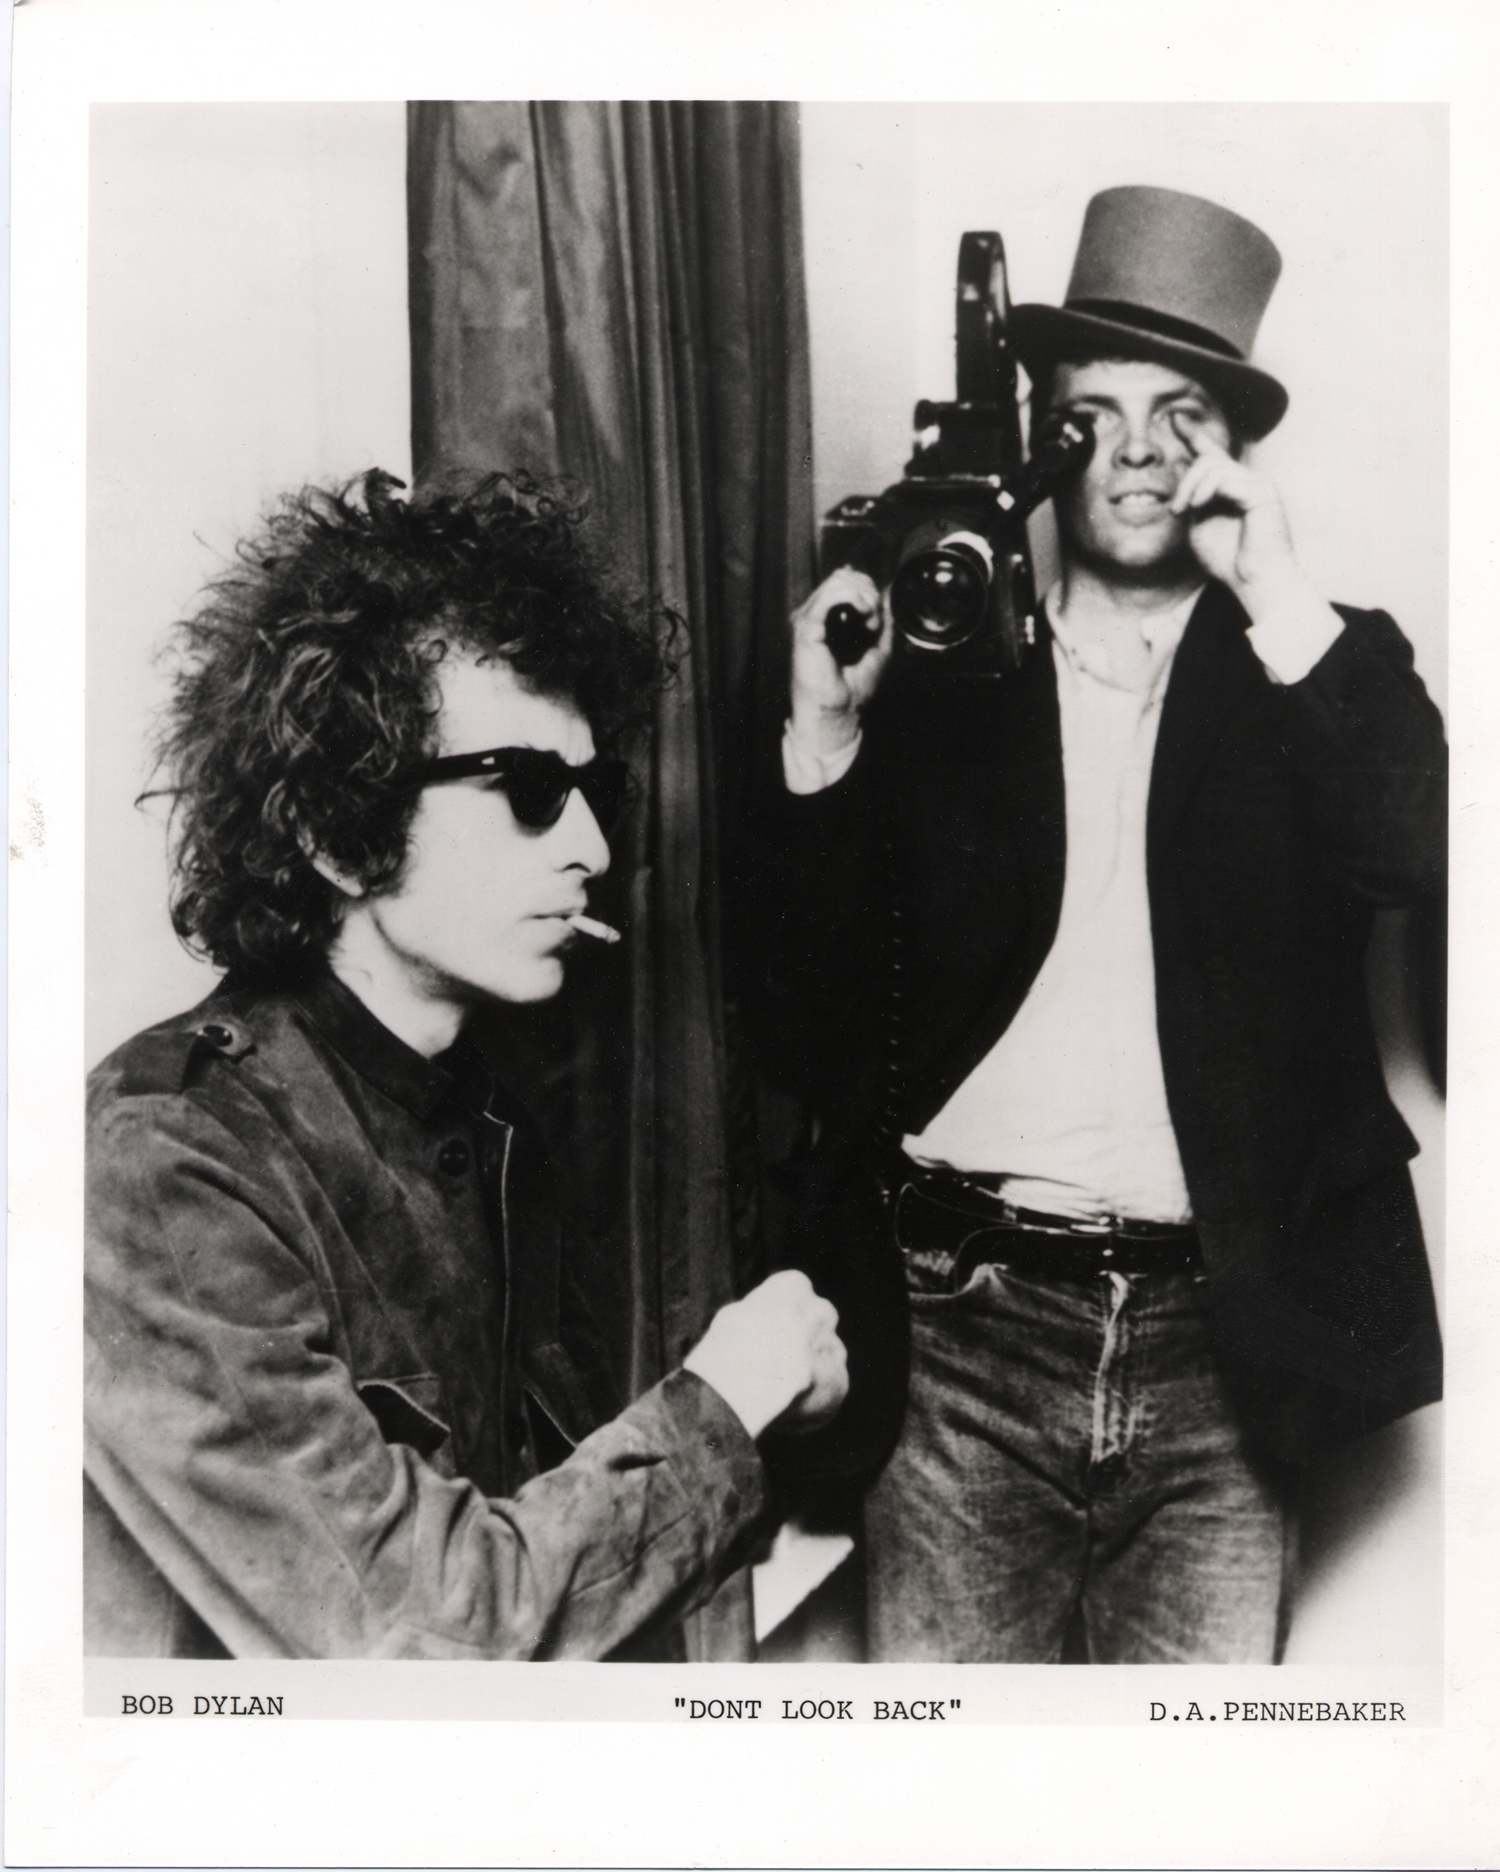 D. A. Pennebaker (right) and Bob Dylan during filming of Don't Look Back, 1965.